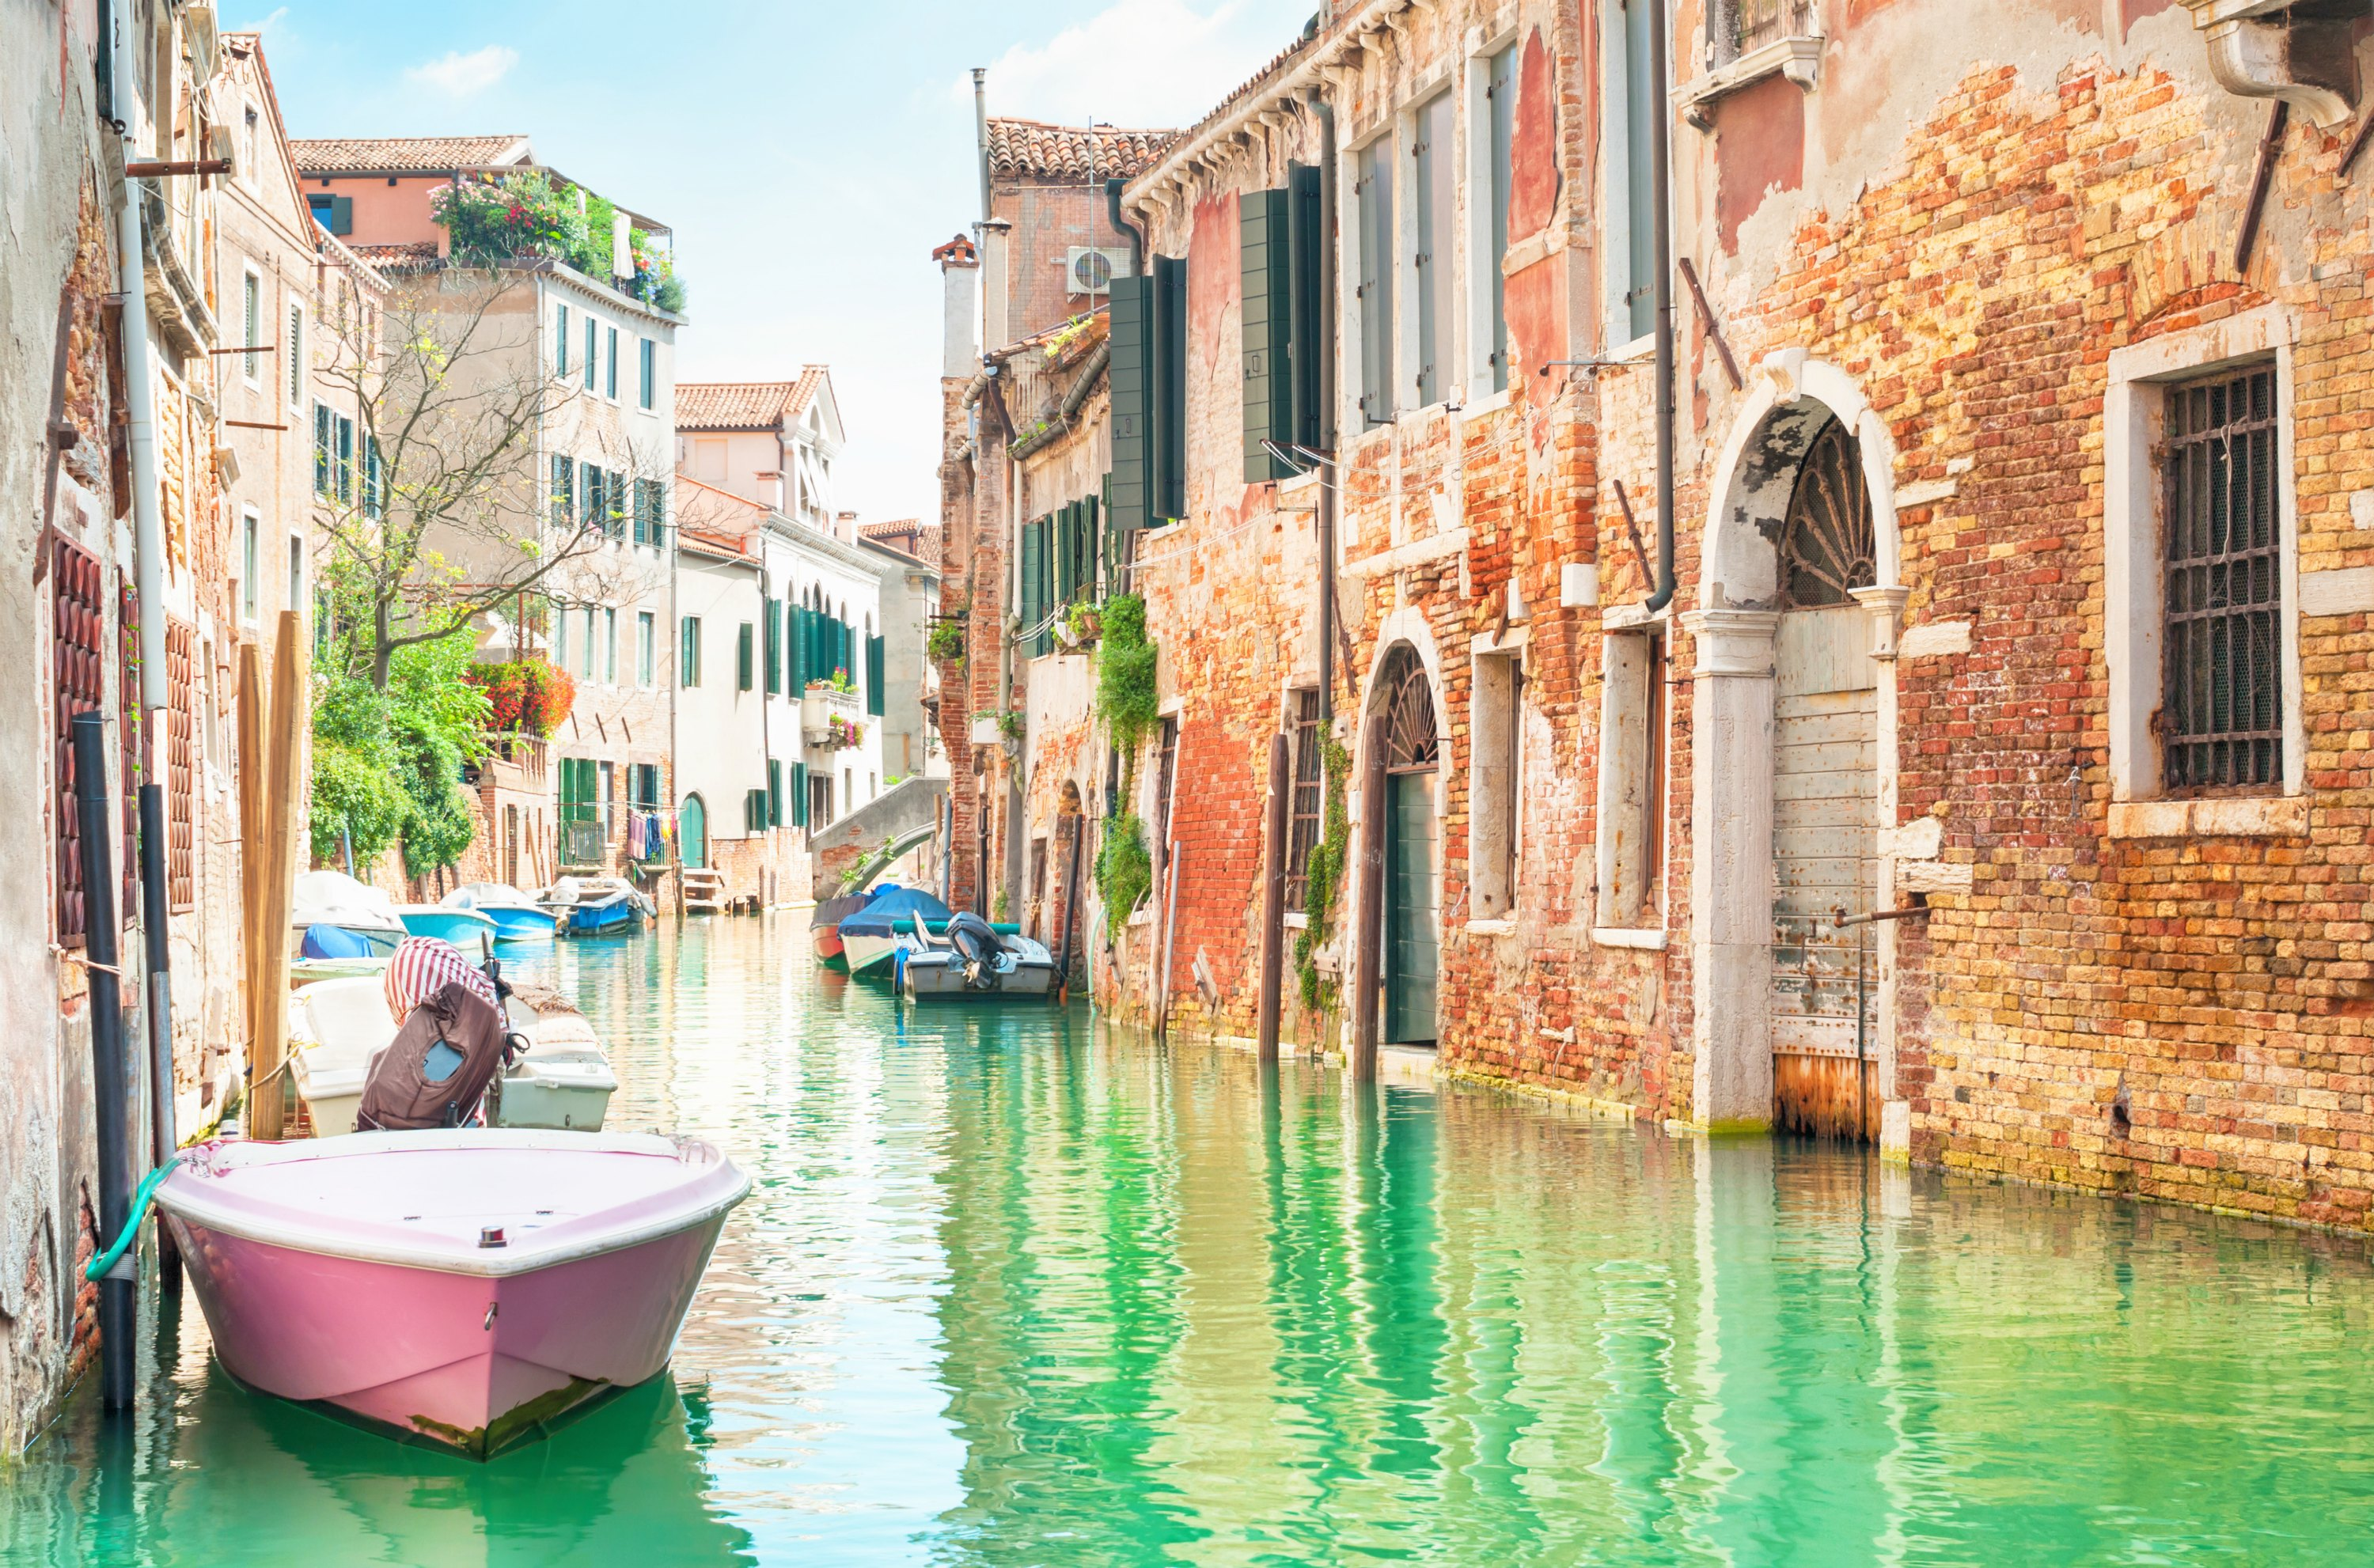 Italy Quotes 5 Quotes About Italy That Will Awaken Your Wanderlust